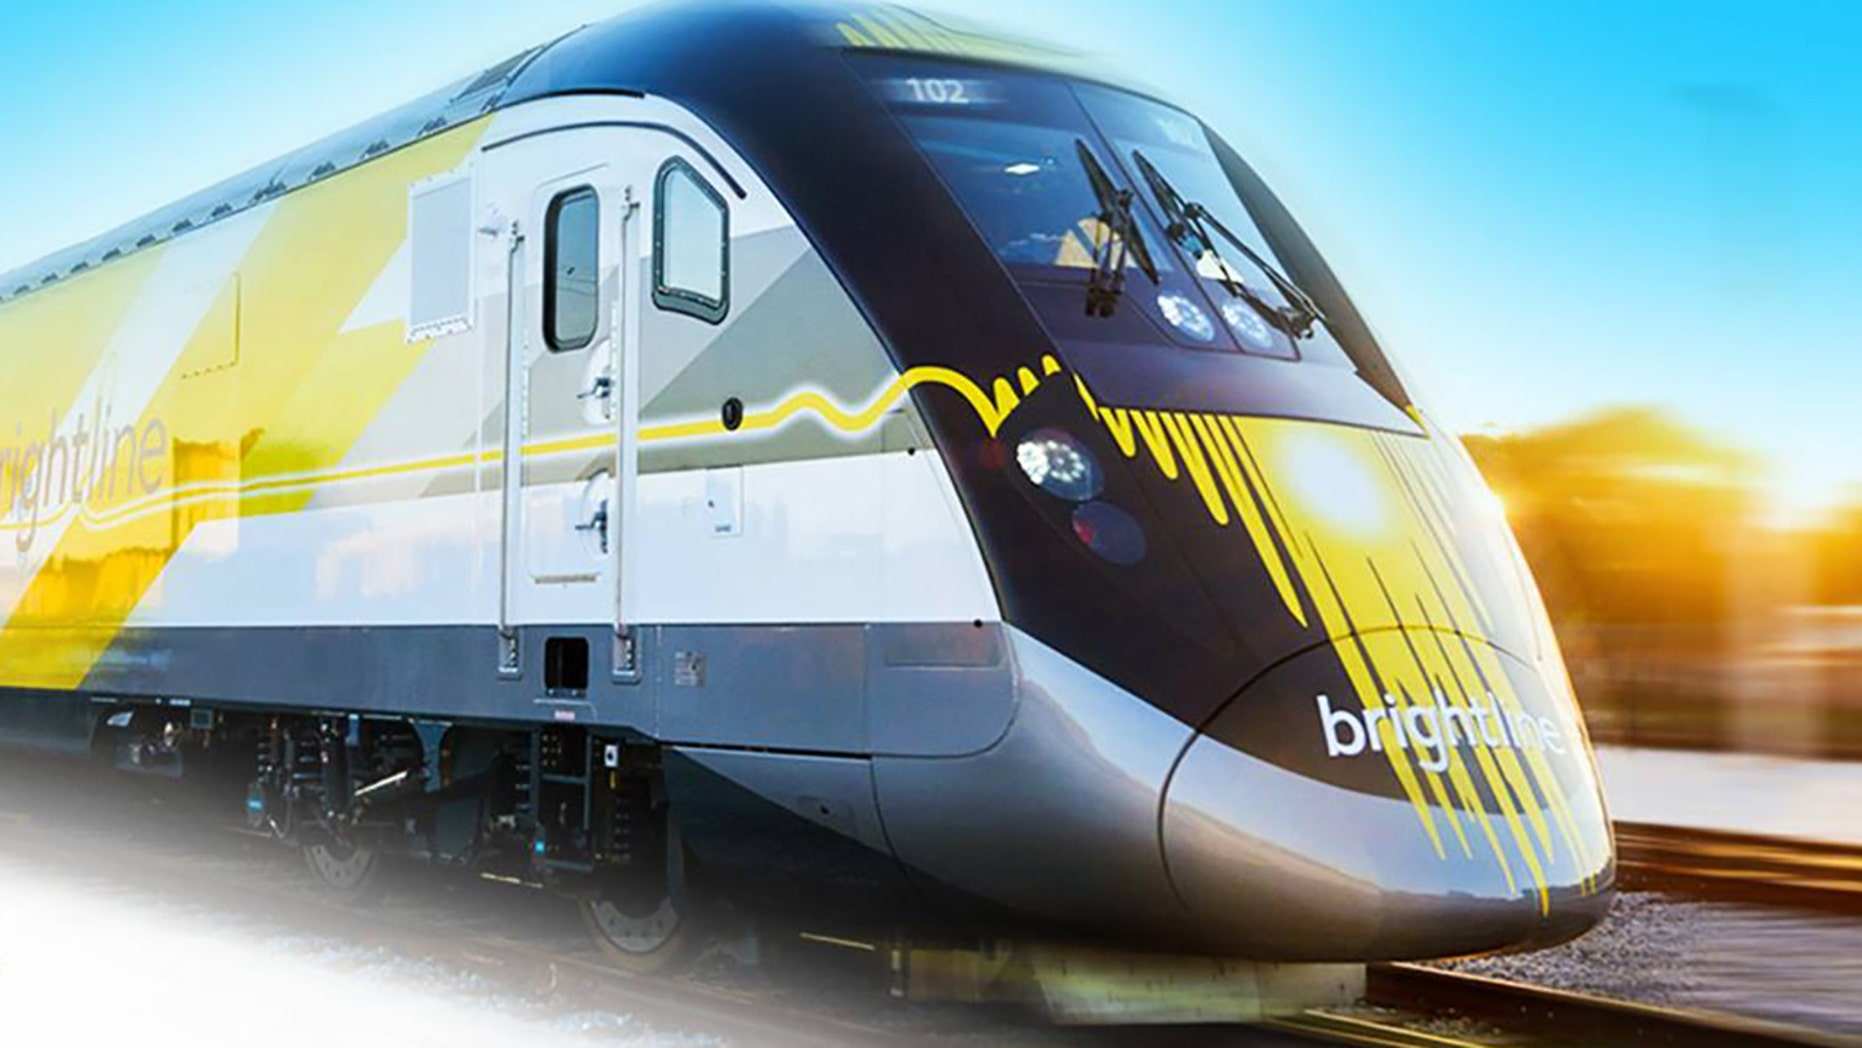 Florida's Brightline rail service began operating in January.